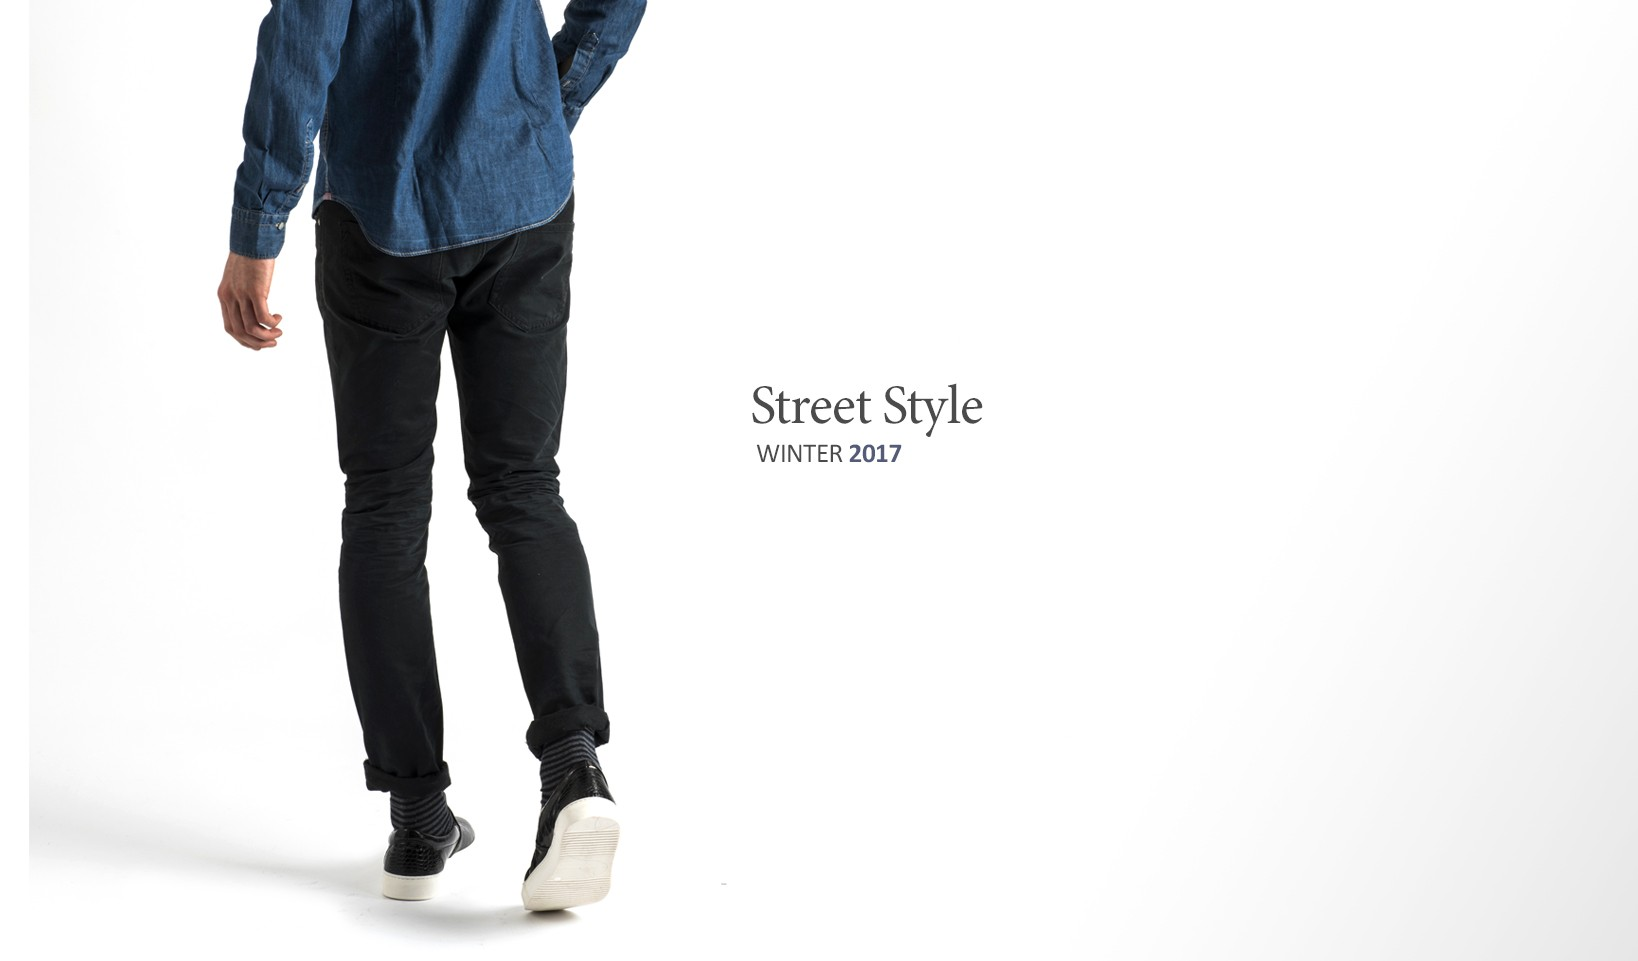 Street Style is the way